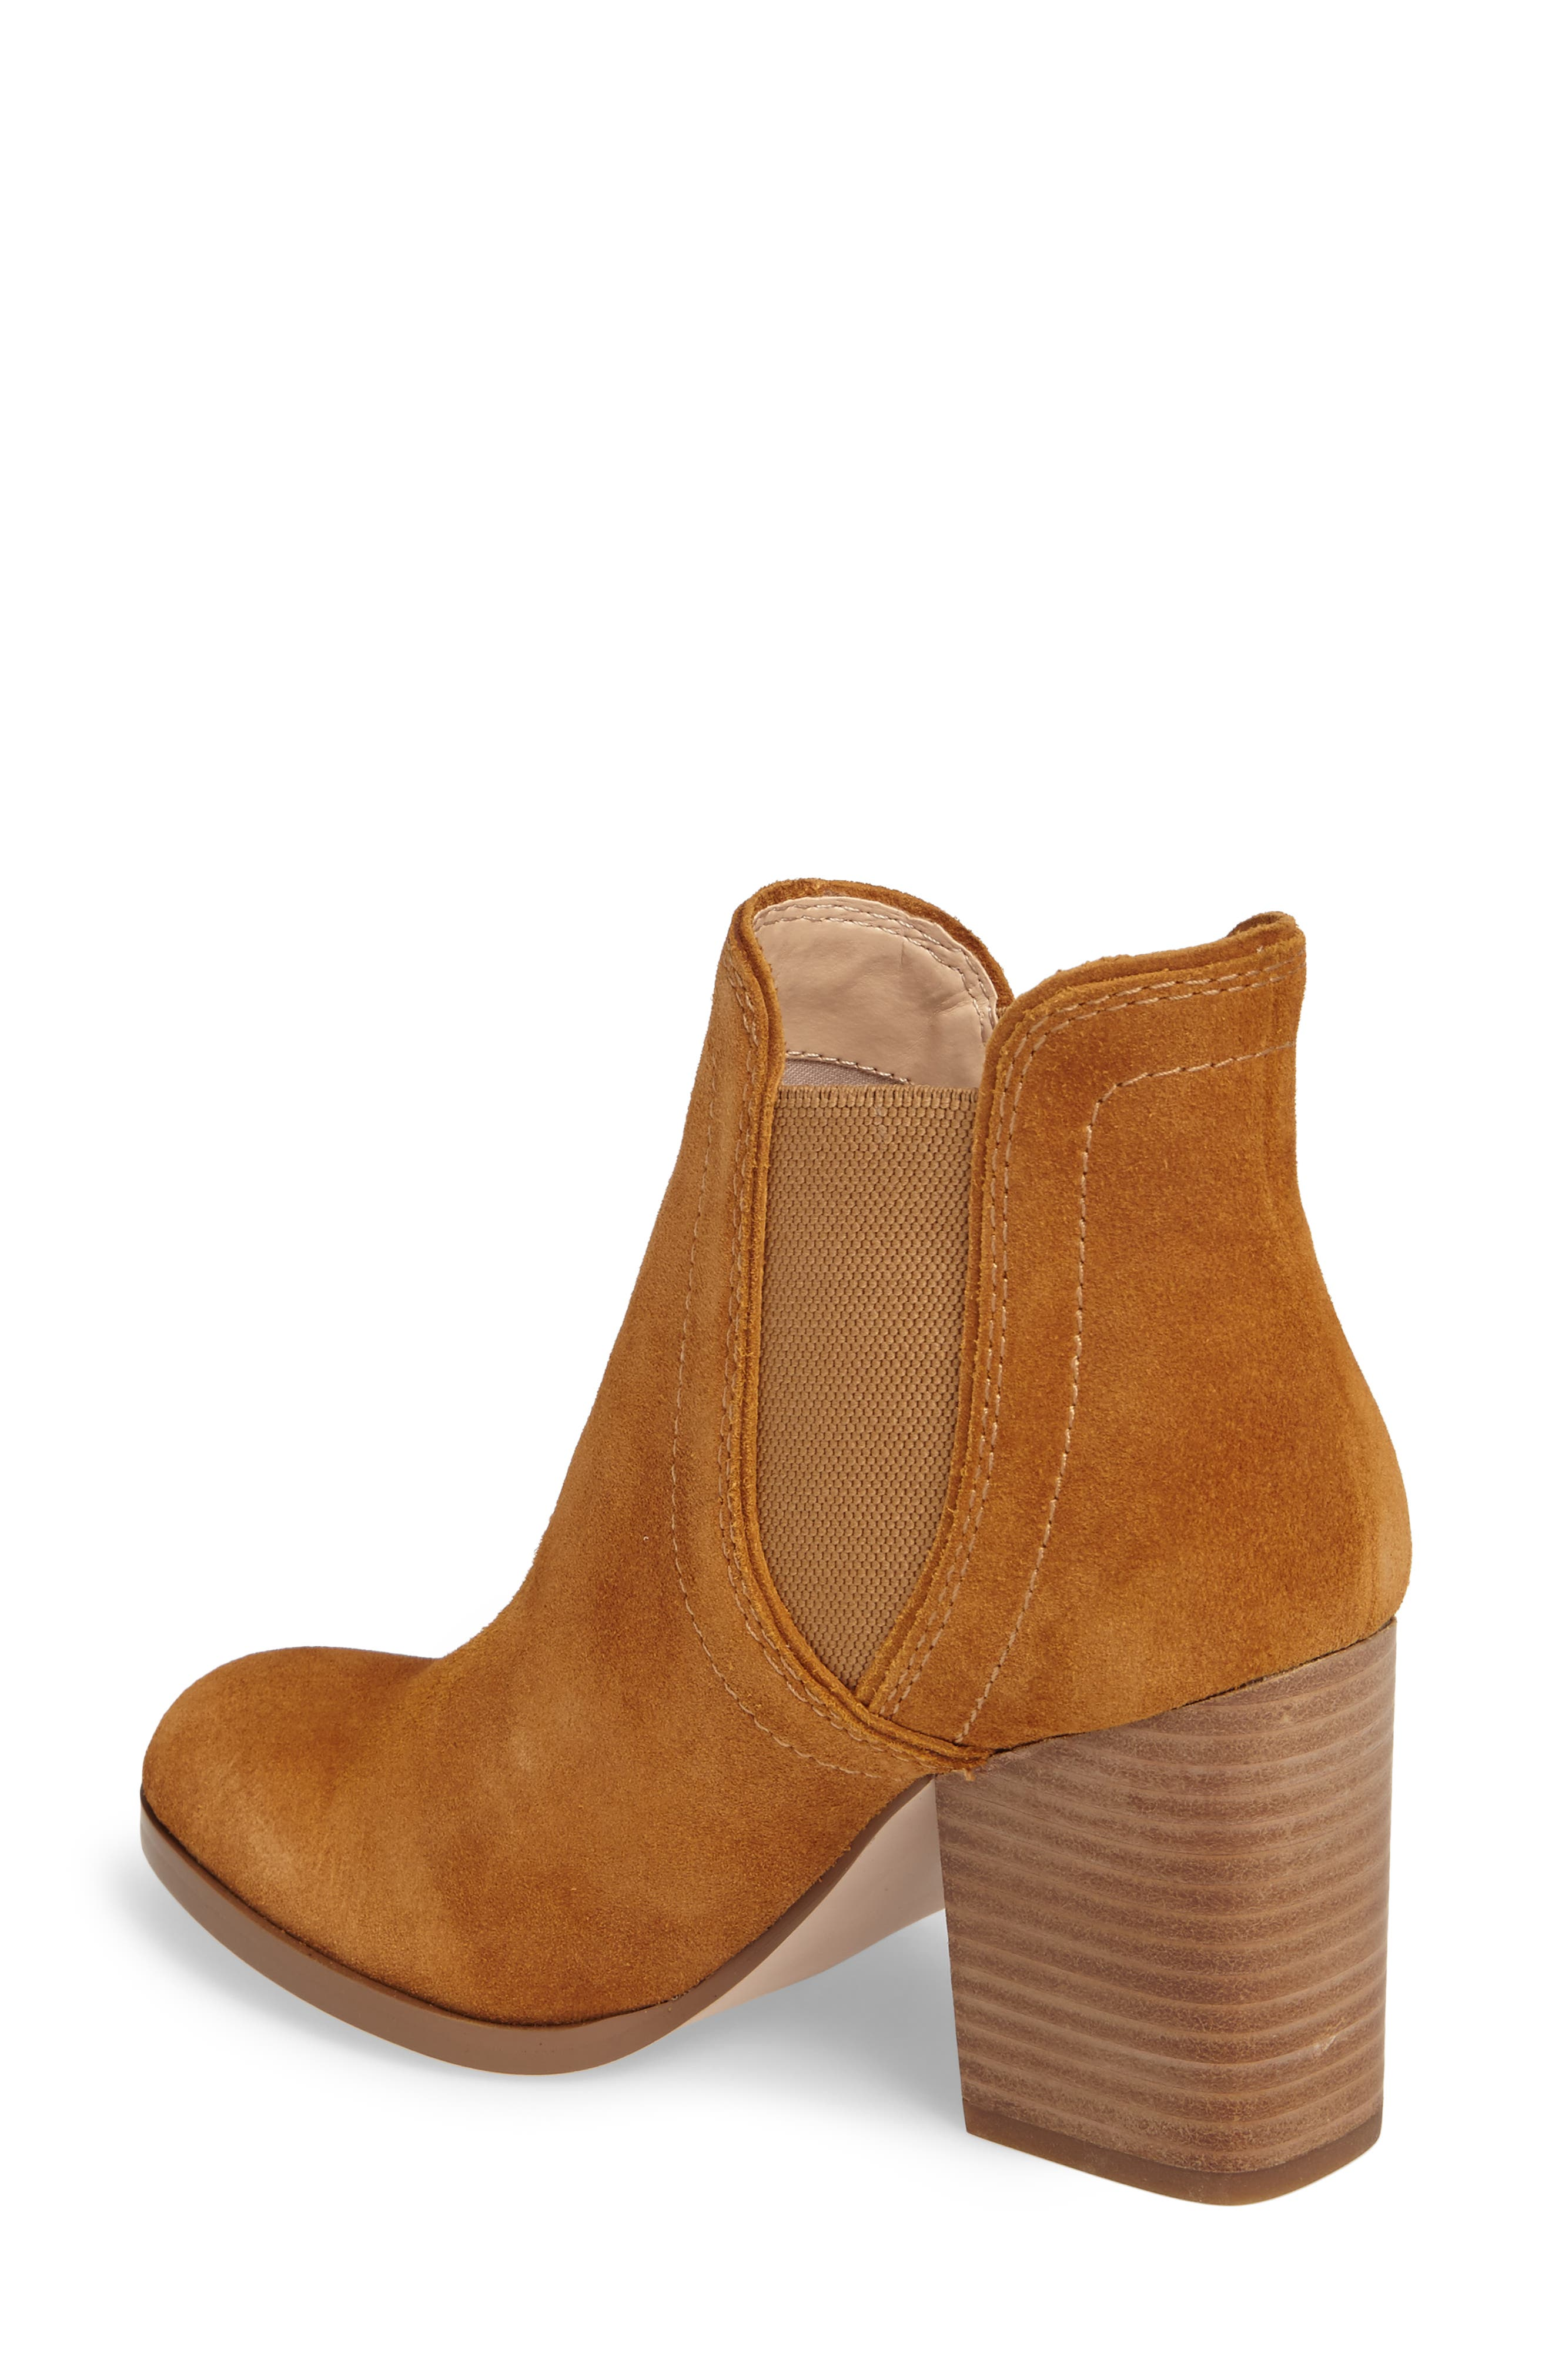 Alternate Image 2  - Sole Society Carrillo Bootie (Women)